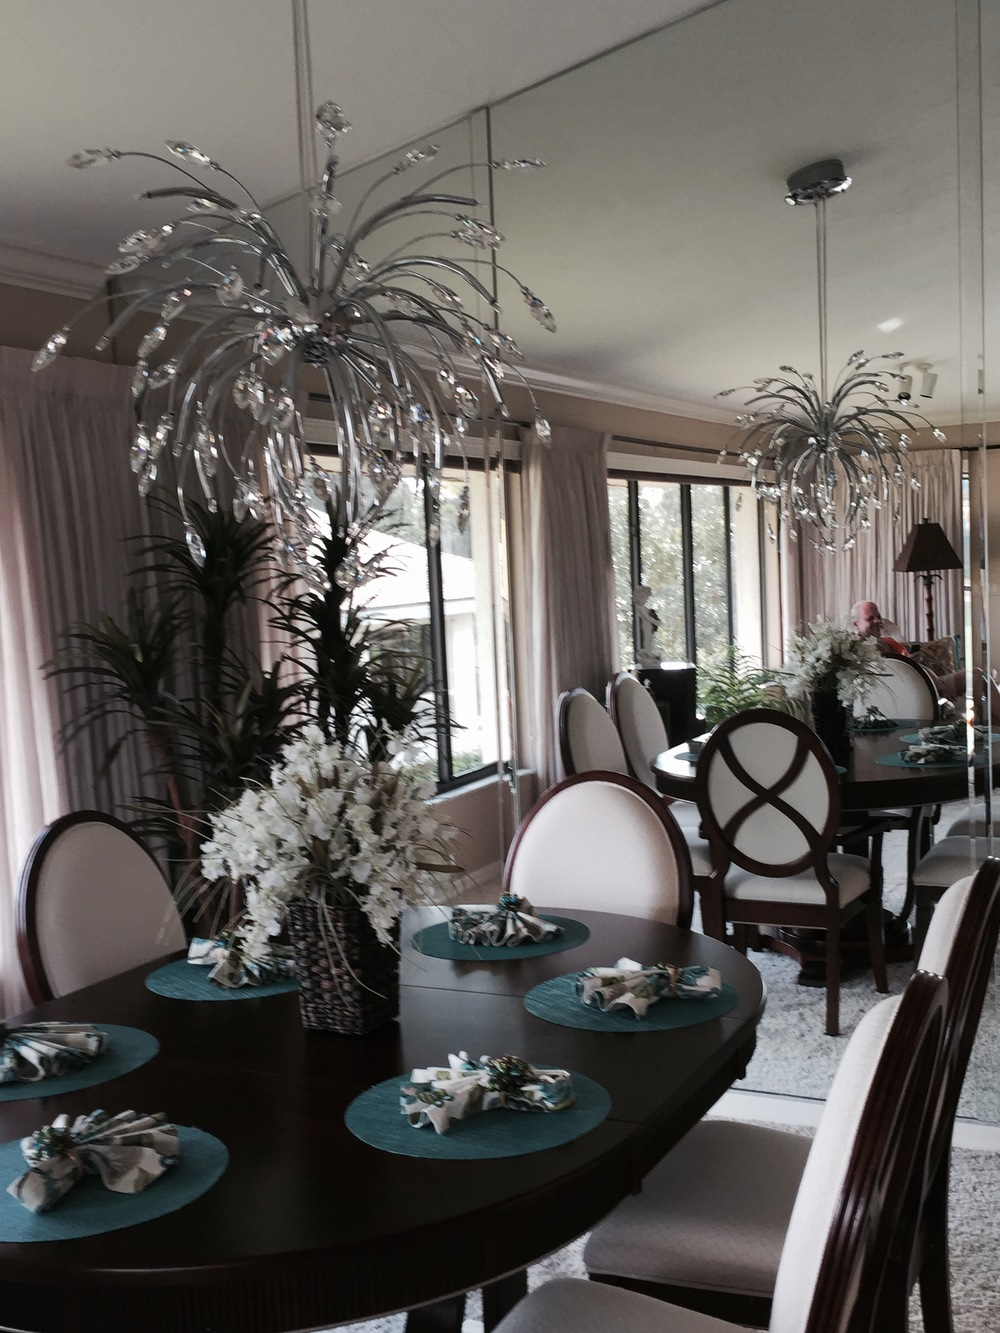 IMAGE SOURCE: Wilson Lighting (these chandeliers available through Savvy Surrounding Style)